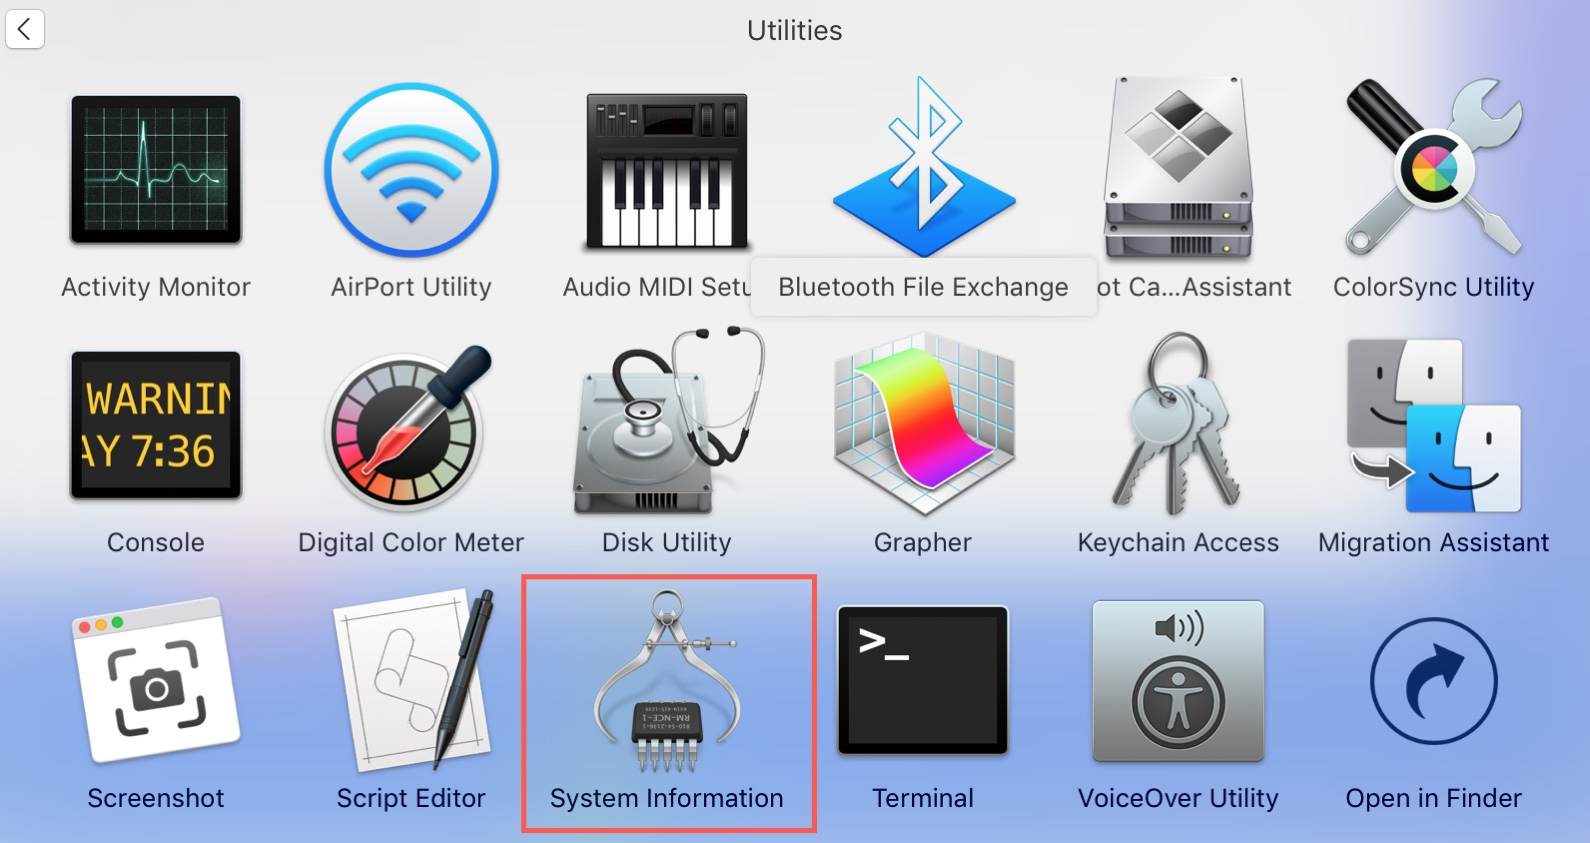 Utilities System Information in Applications Folder